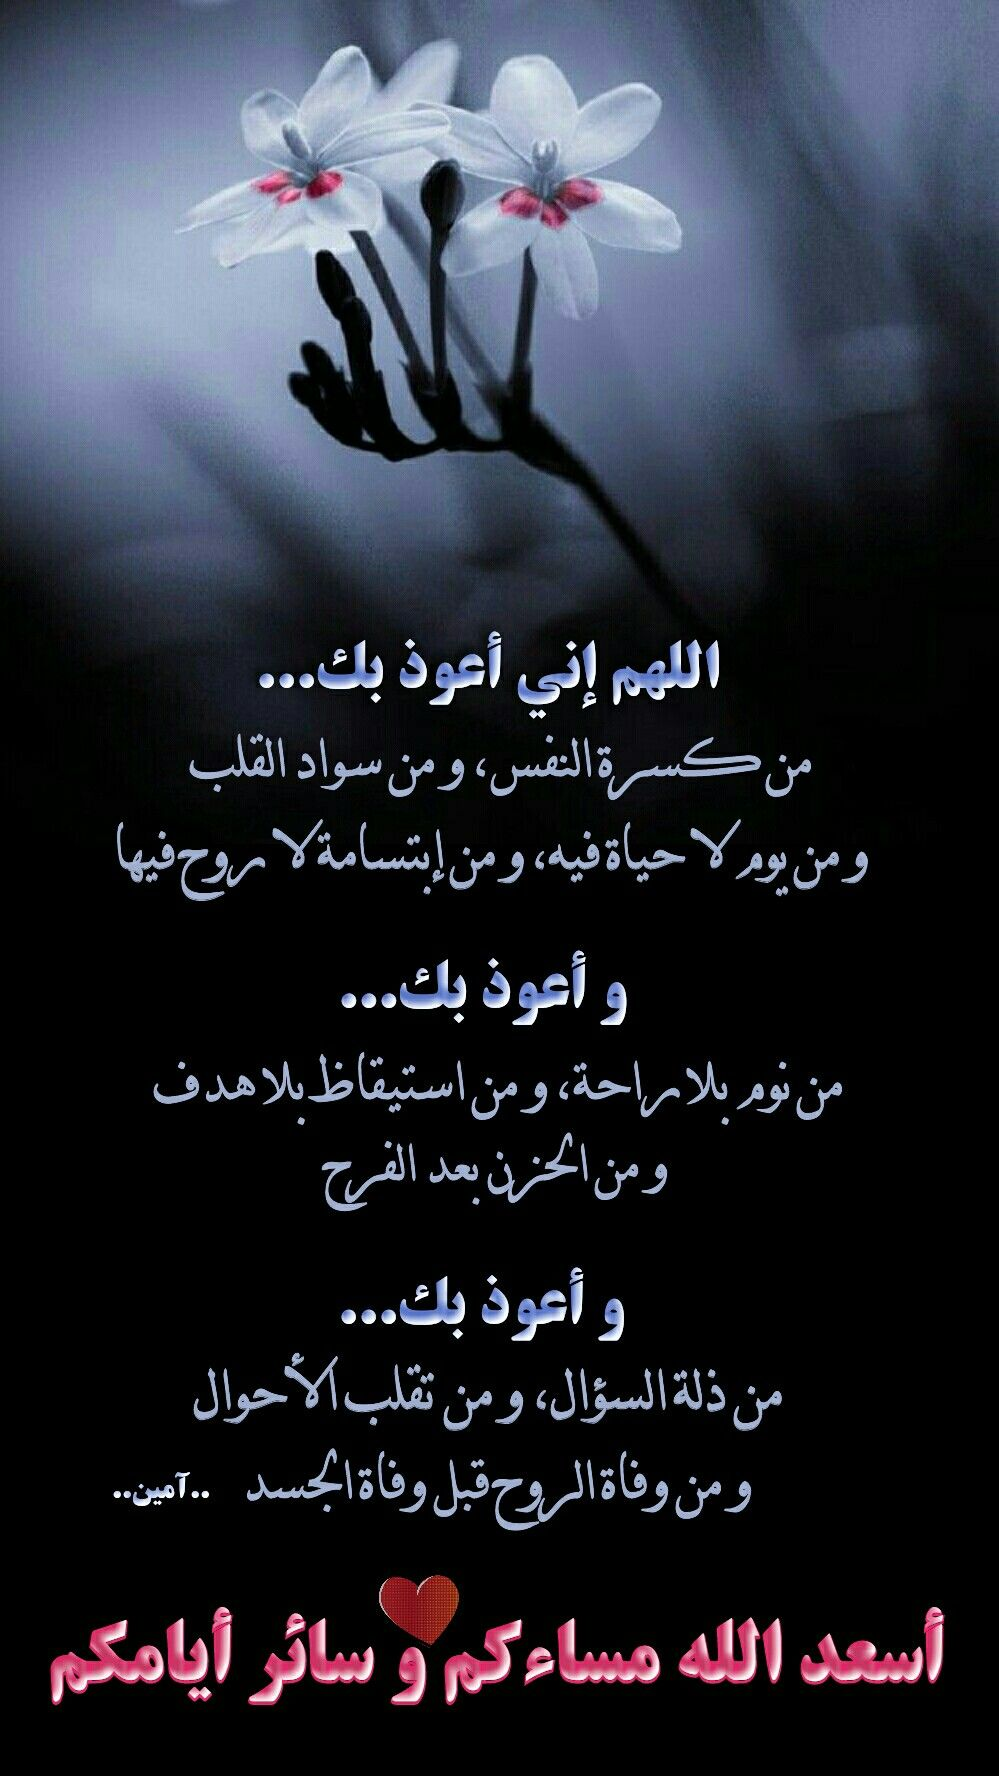 Pin By Ameer On صباحيات و مسائيات Quotations Good Evening Quotes